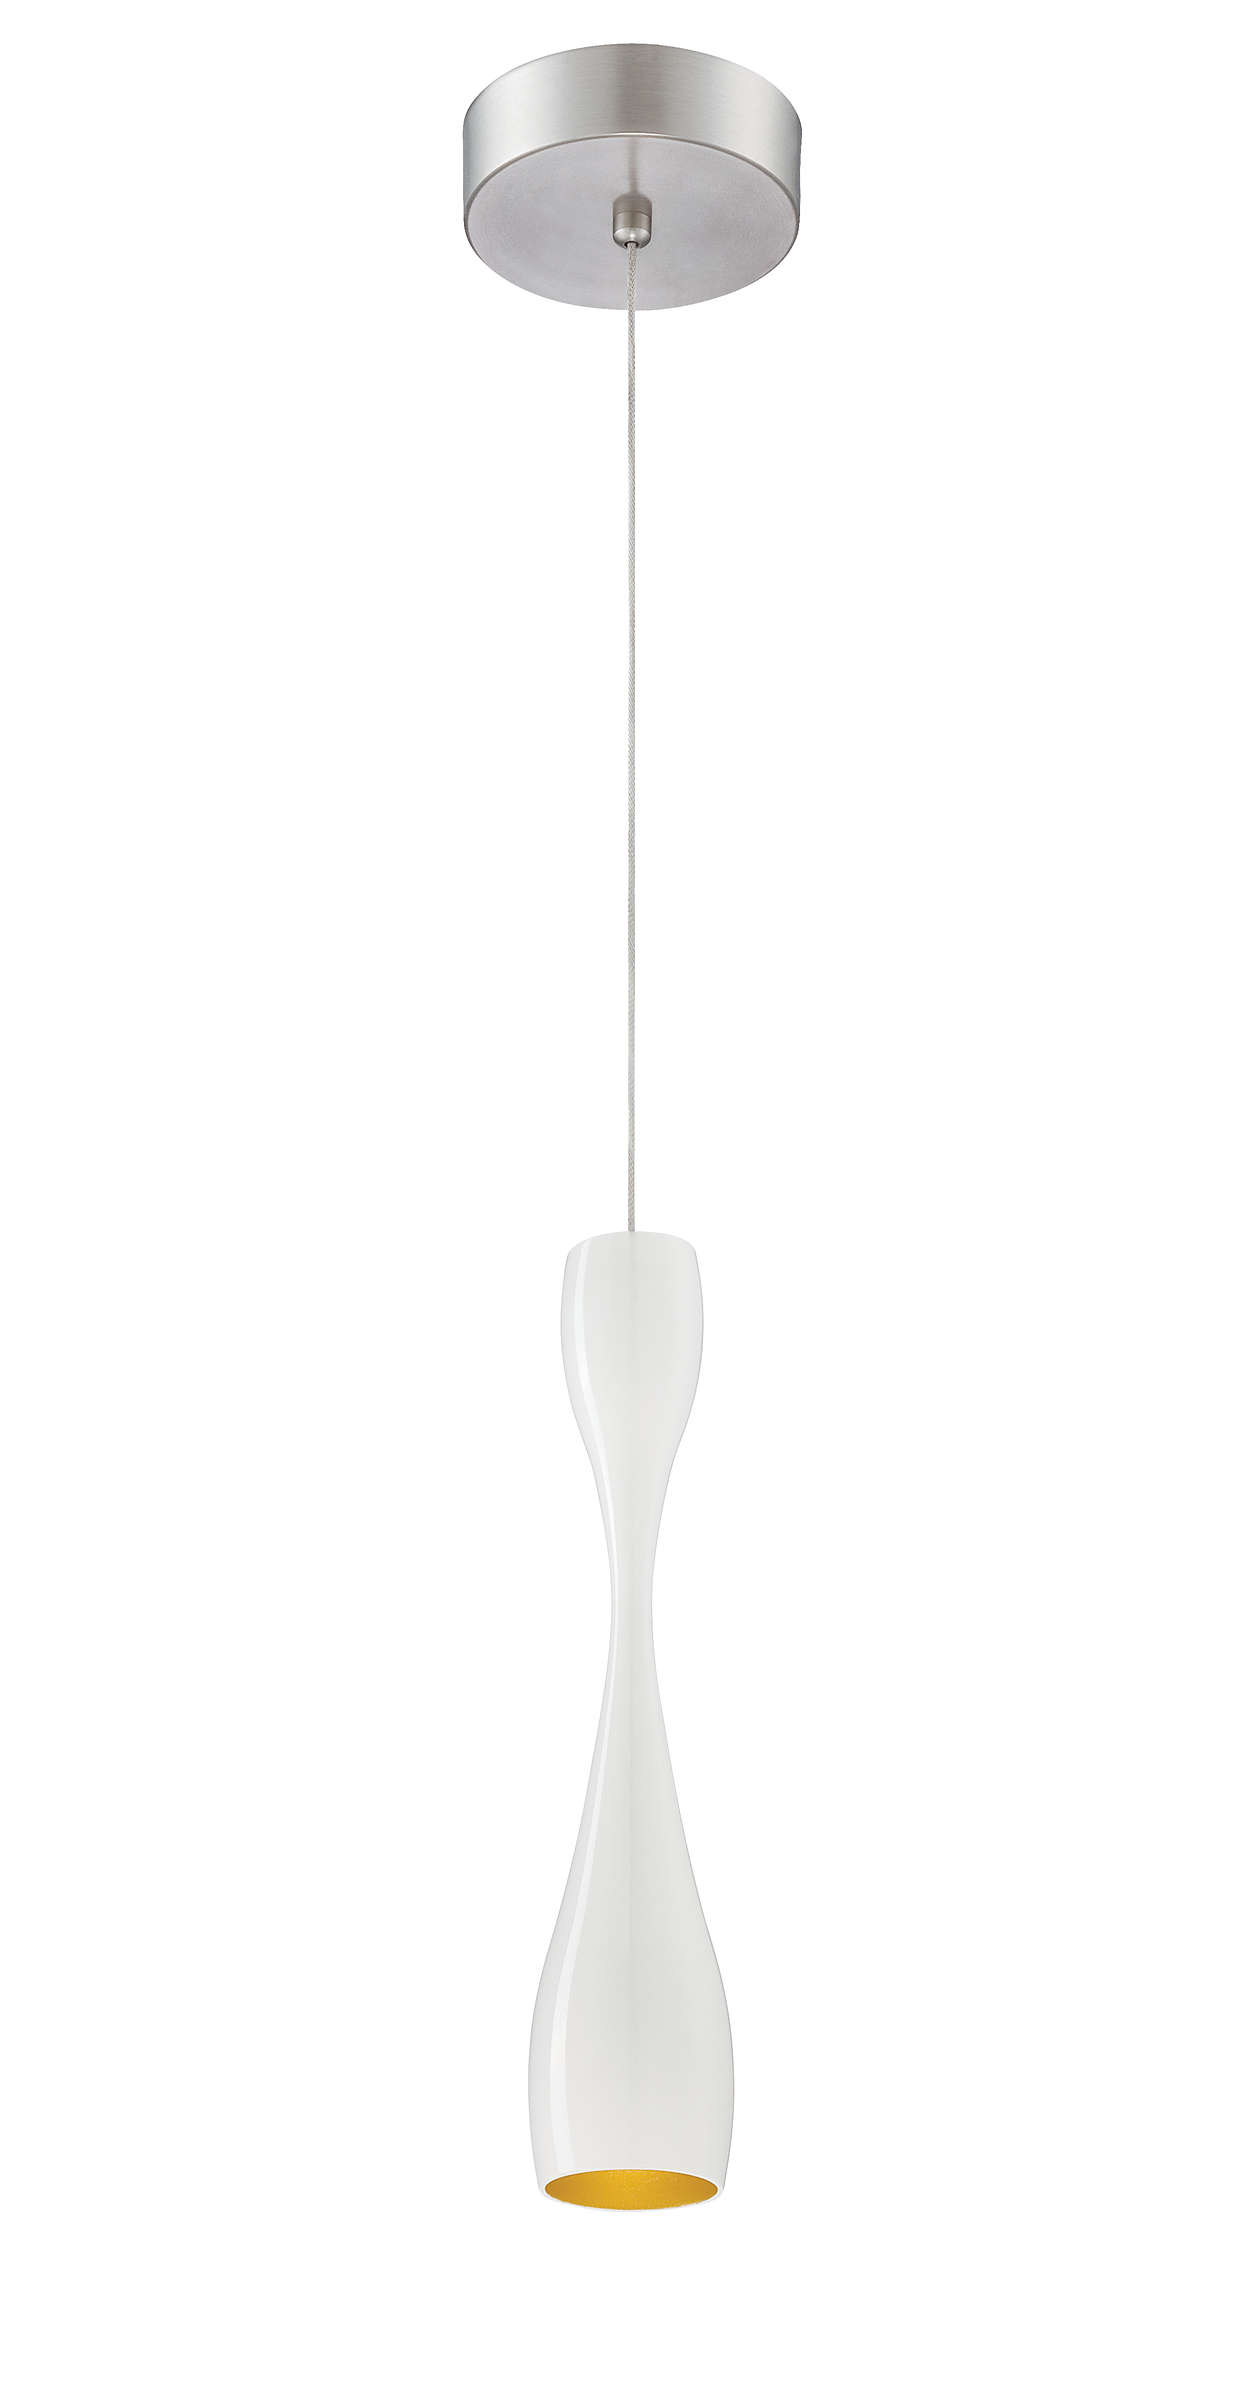 Sophia 1-light LED pendant in Gloss White finish